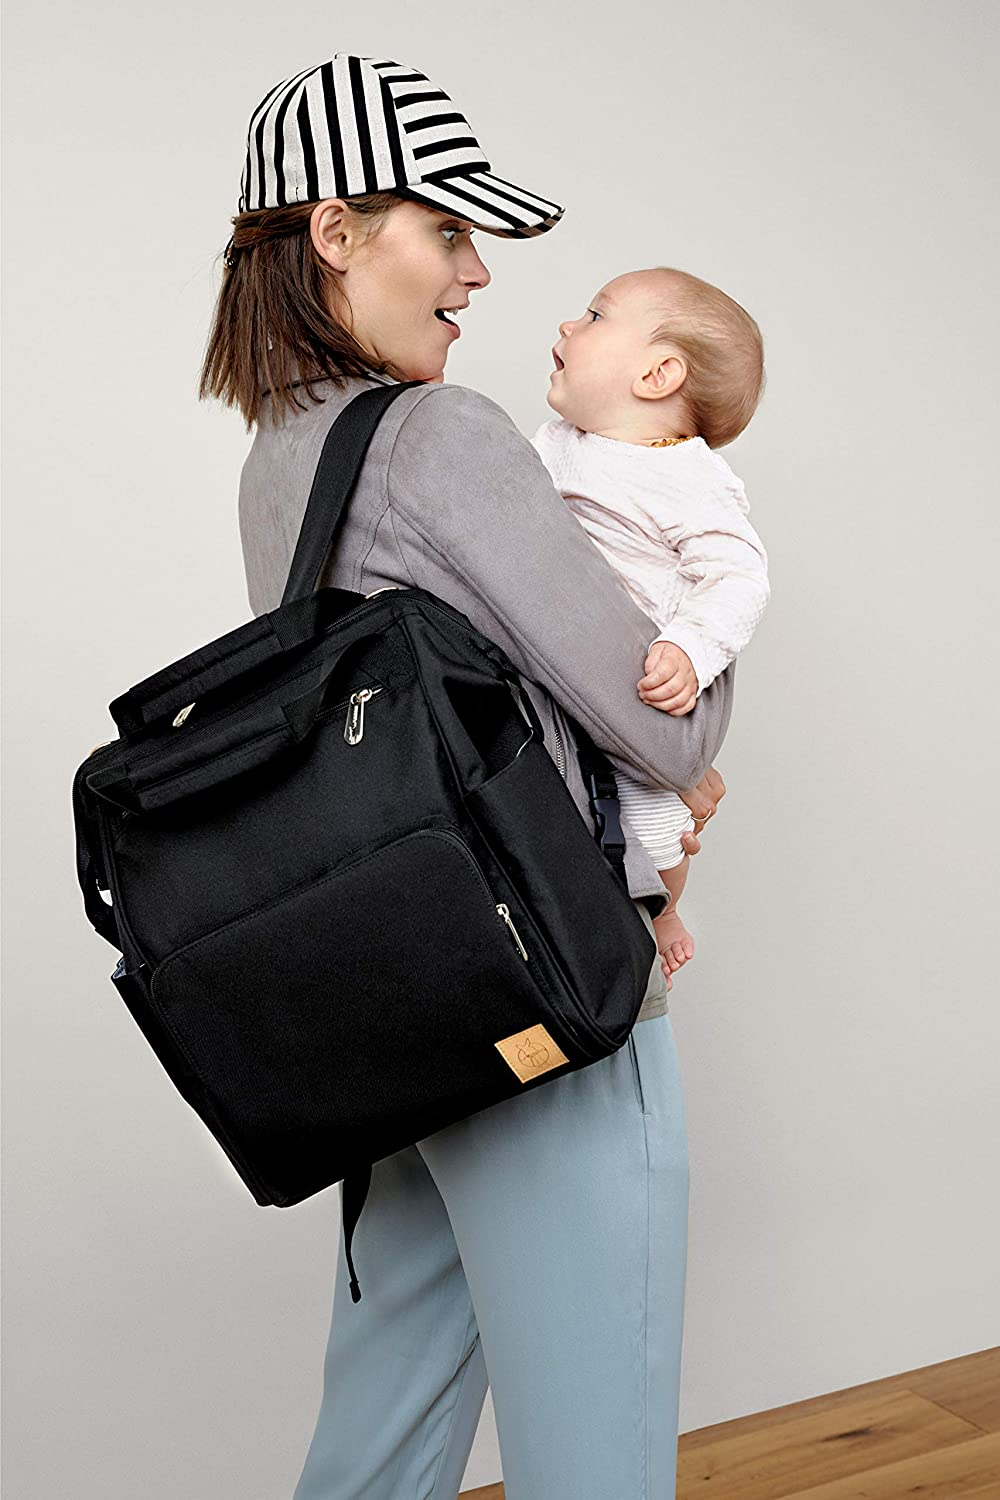 Amazon.com : Lässig Goldie Glam Diaper Bag -Travel Backpack- Multi-Functional and Lightweight for Both Baby and Kids Care-Stylish and Durable - Black : Baby